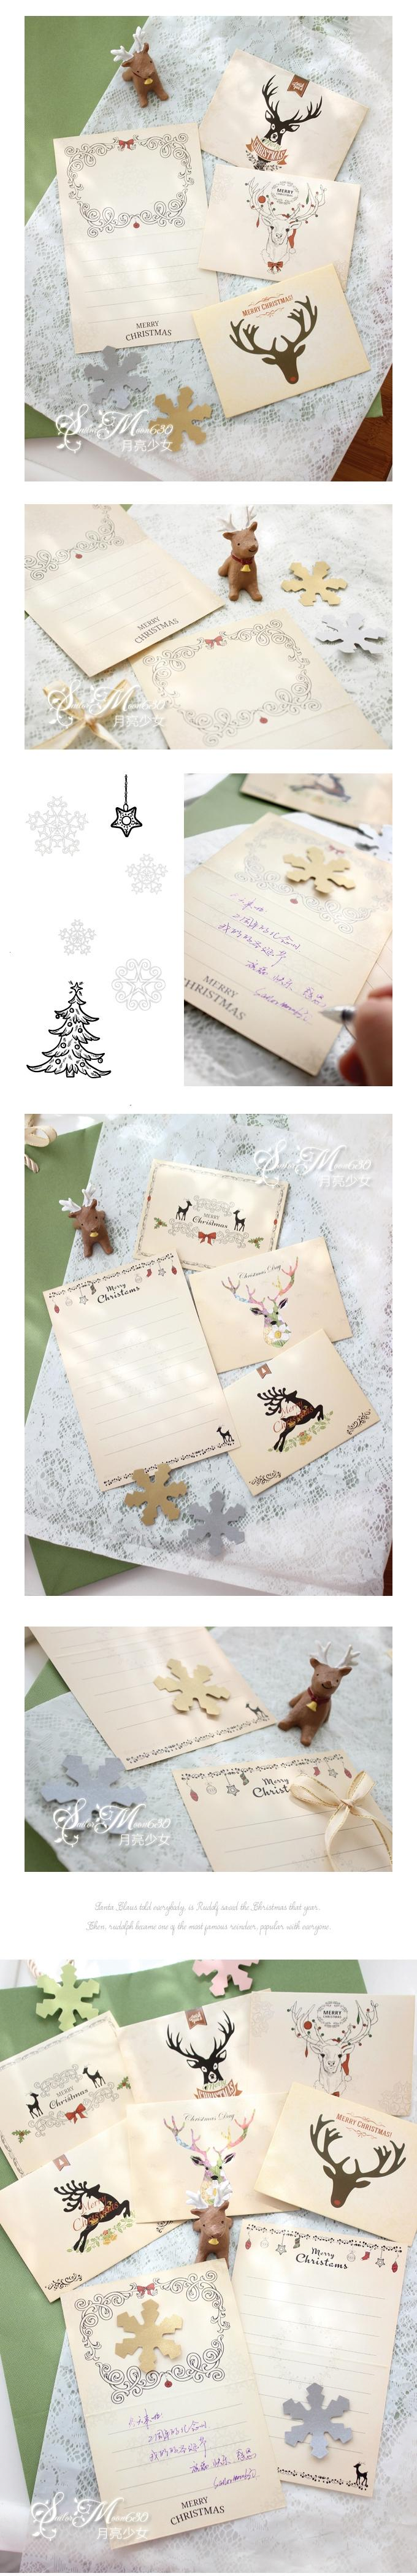 Retro new year greeting cards for christmas cards sealed envelope greeting card size 85 115 cm the envelope size 9 12 cm style 6 set the standard card envelope sealing pastes kristyandbryce Images